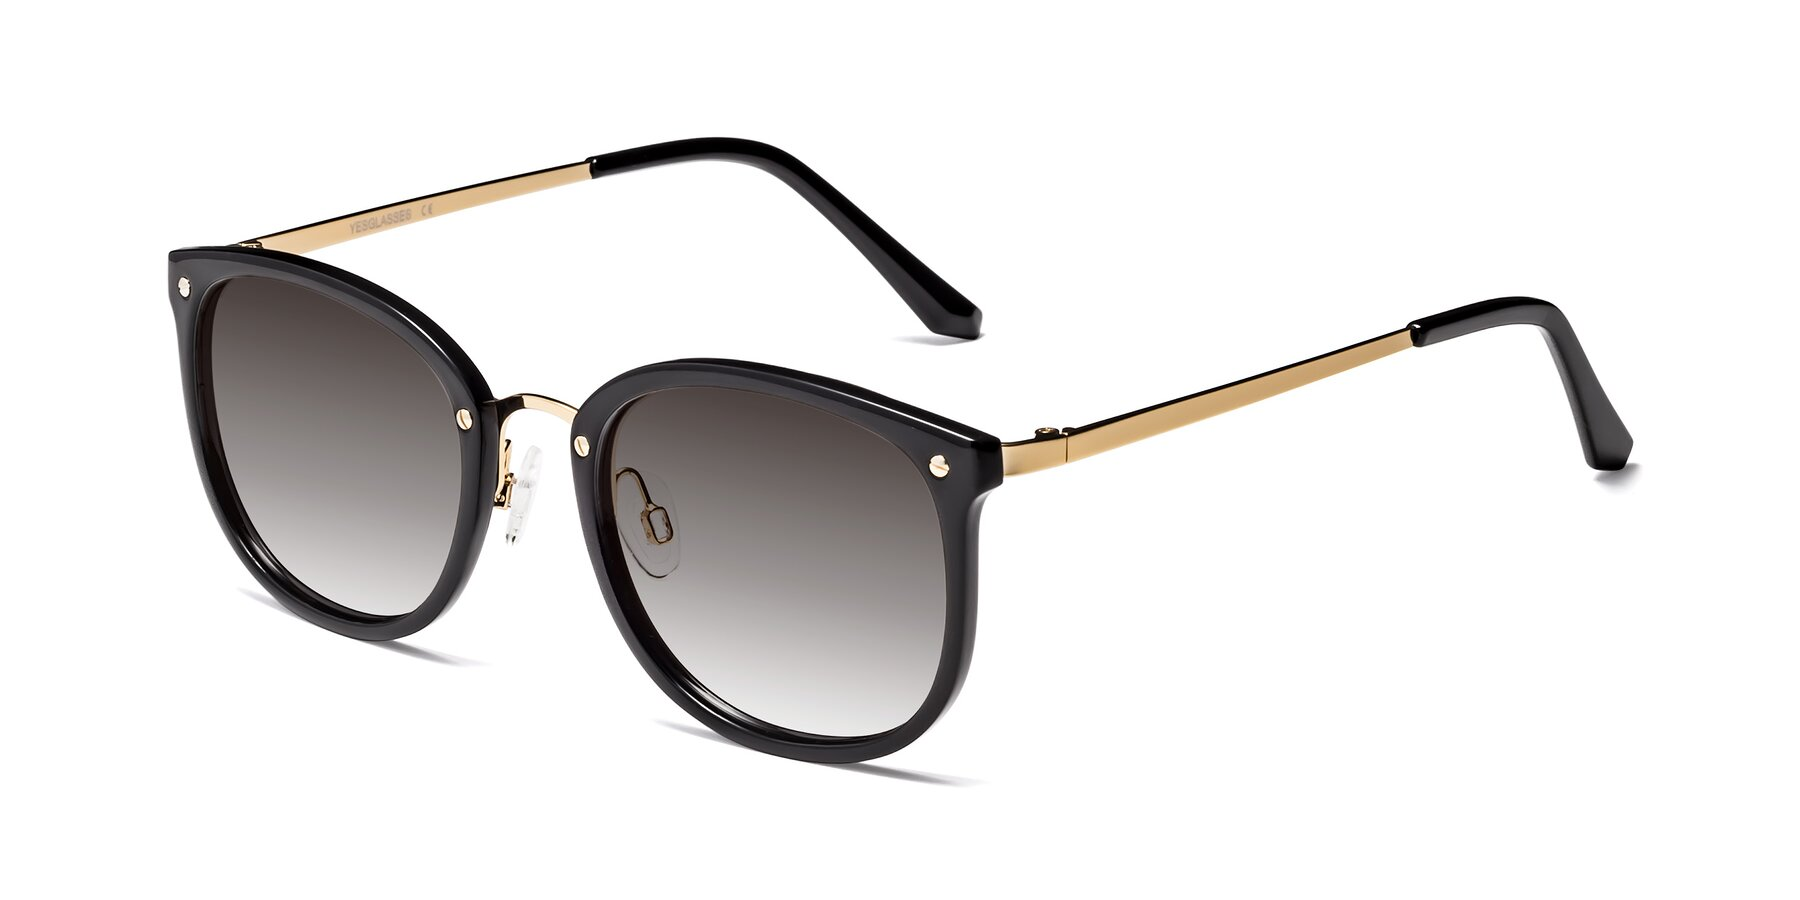 Angle of Timeless in Black-Gold with Gray Gradient Lenses